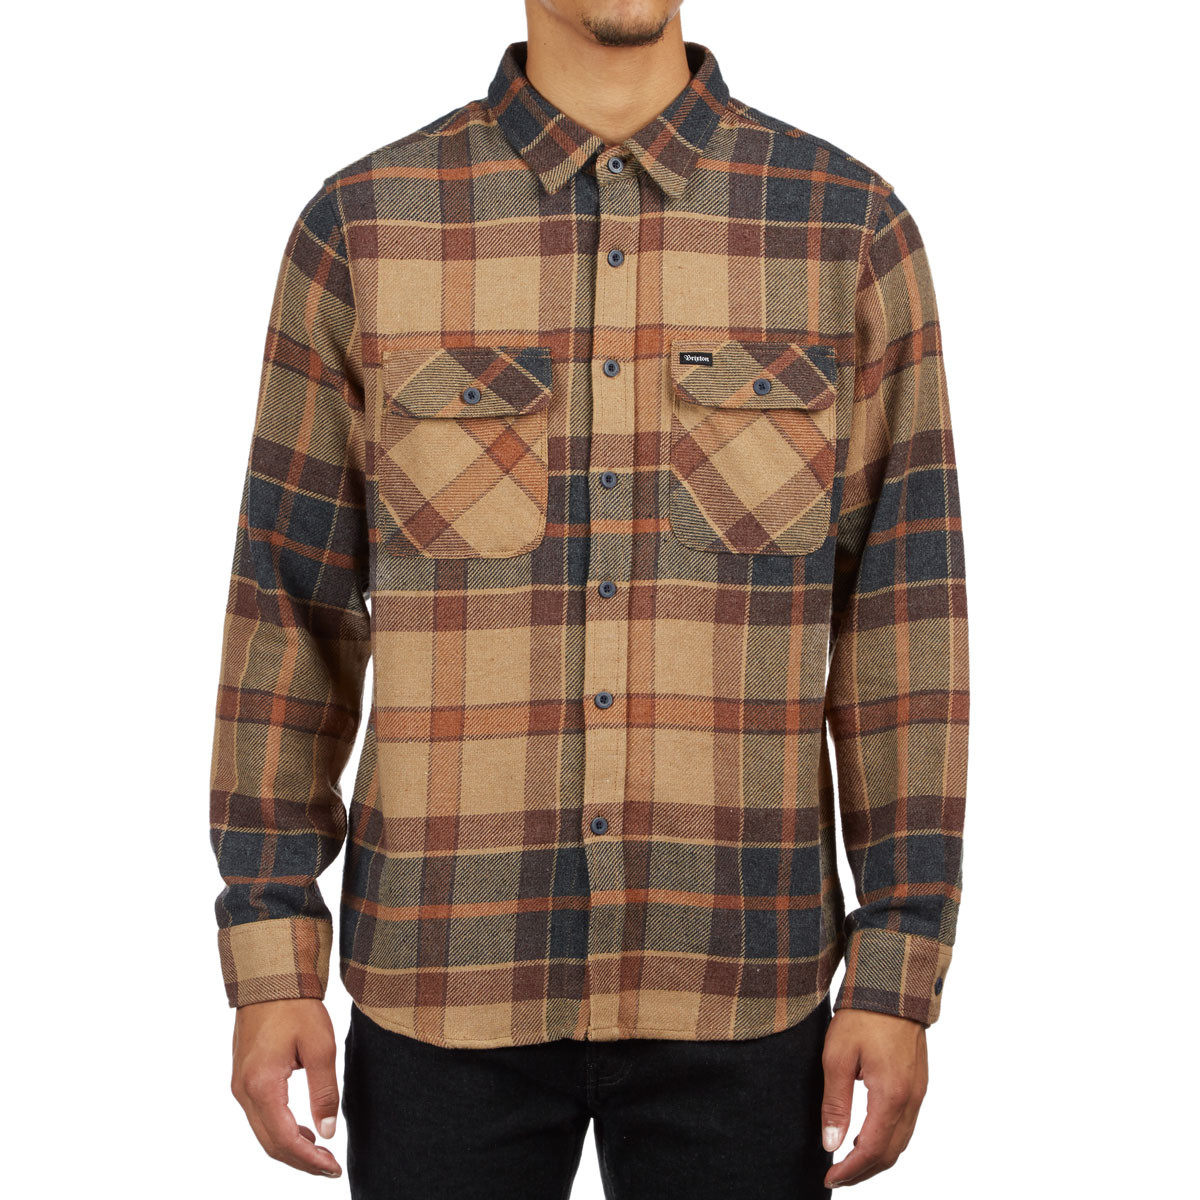 600442931ea6 Brixton Bowery Long Sleeve Flannel Shirt - Cream Copper